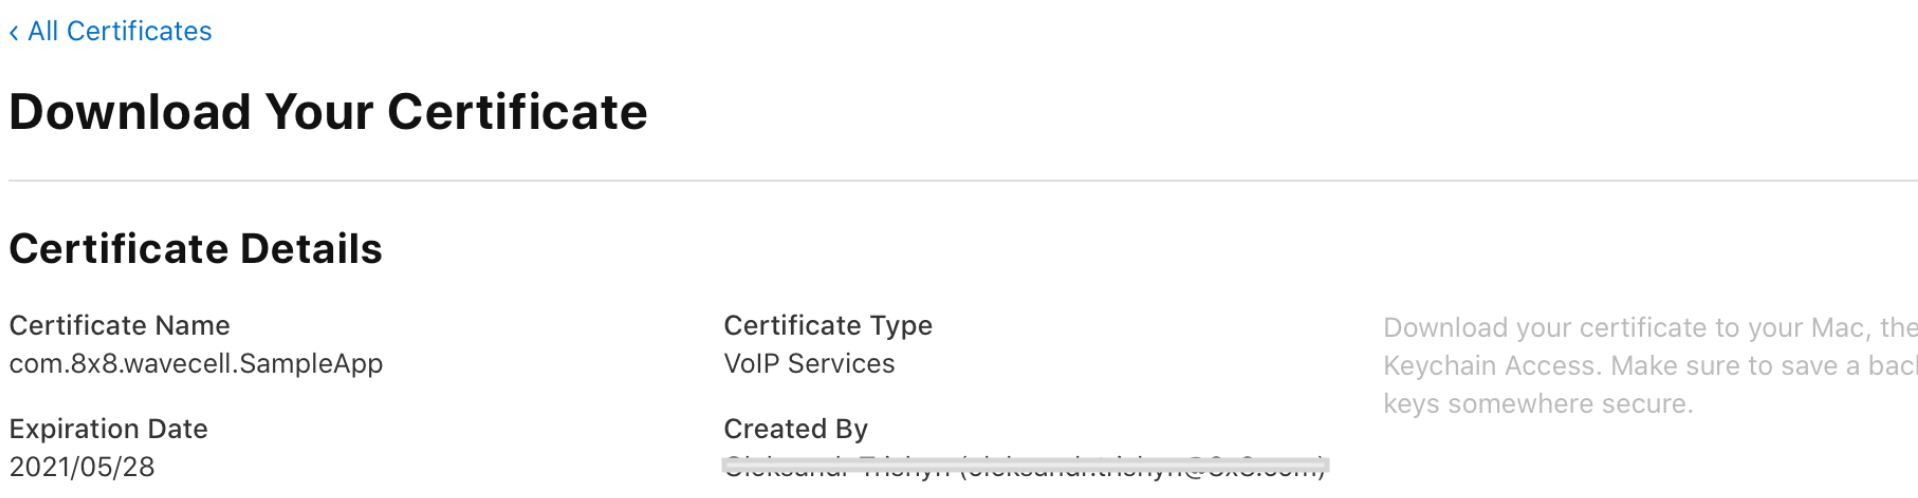 download-voip-services-certificate